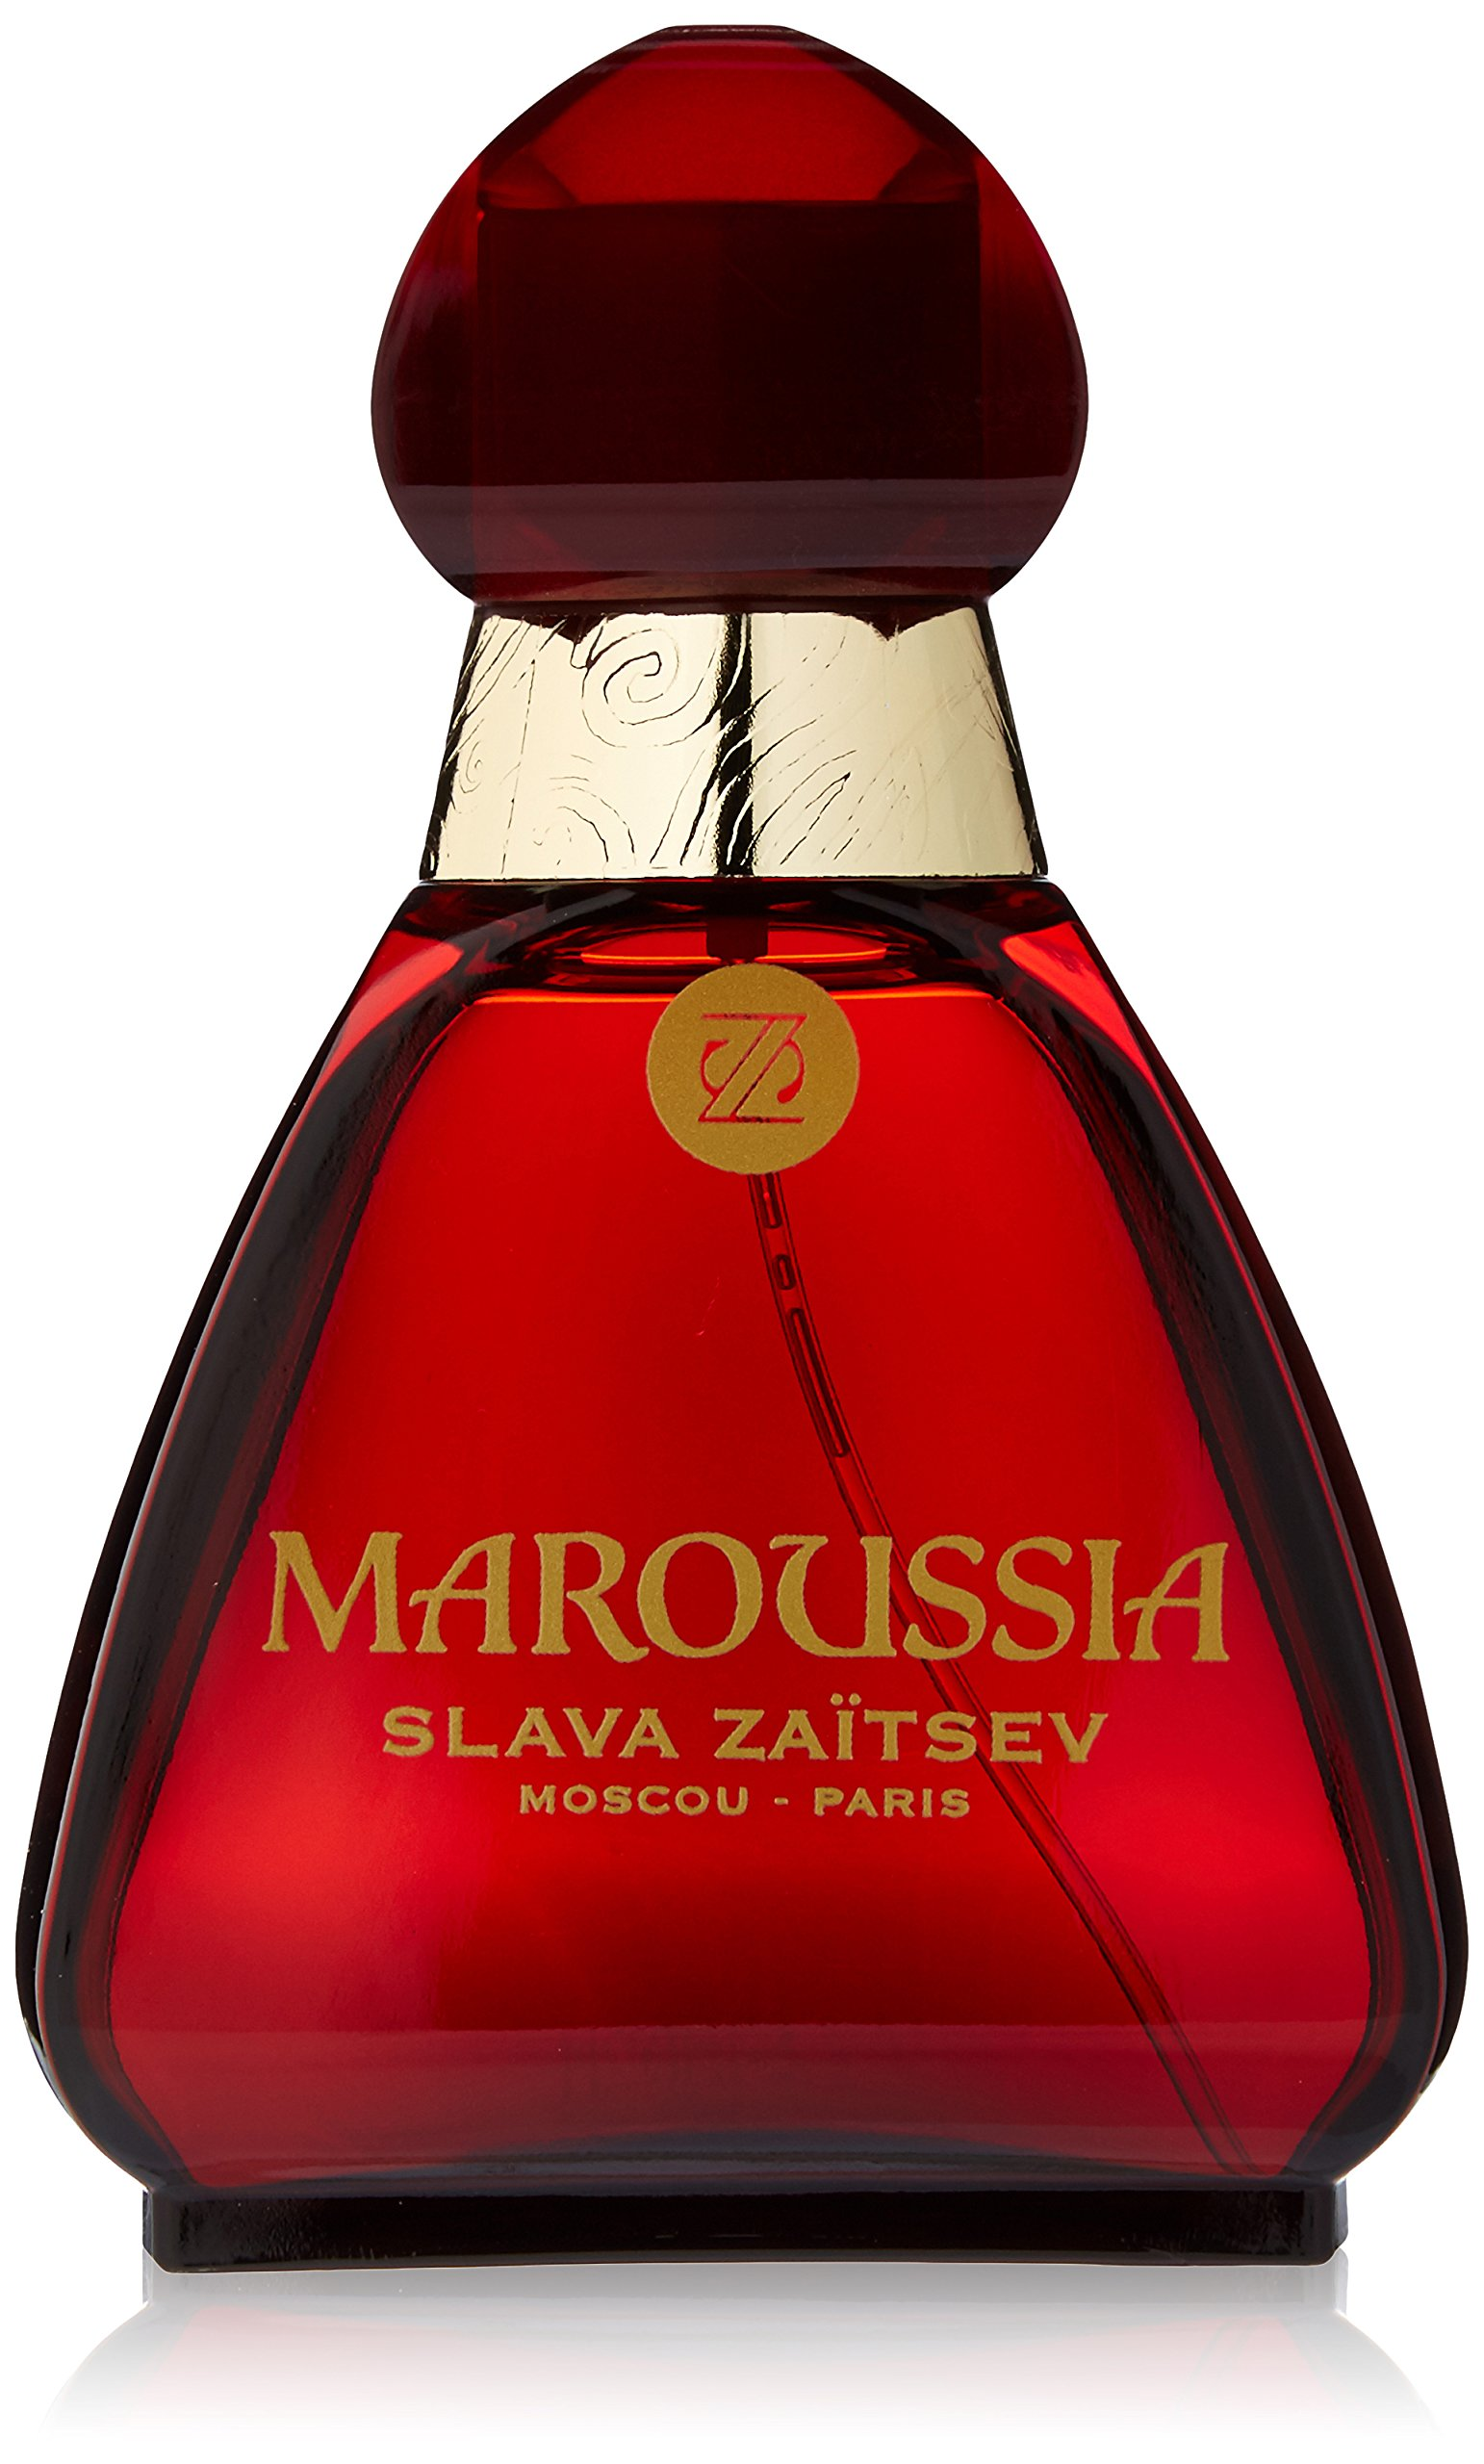 Slava Zaitsev Maroussia Eau De Toilette Spray for Women, 3.4 Ounce